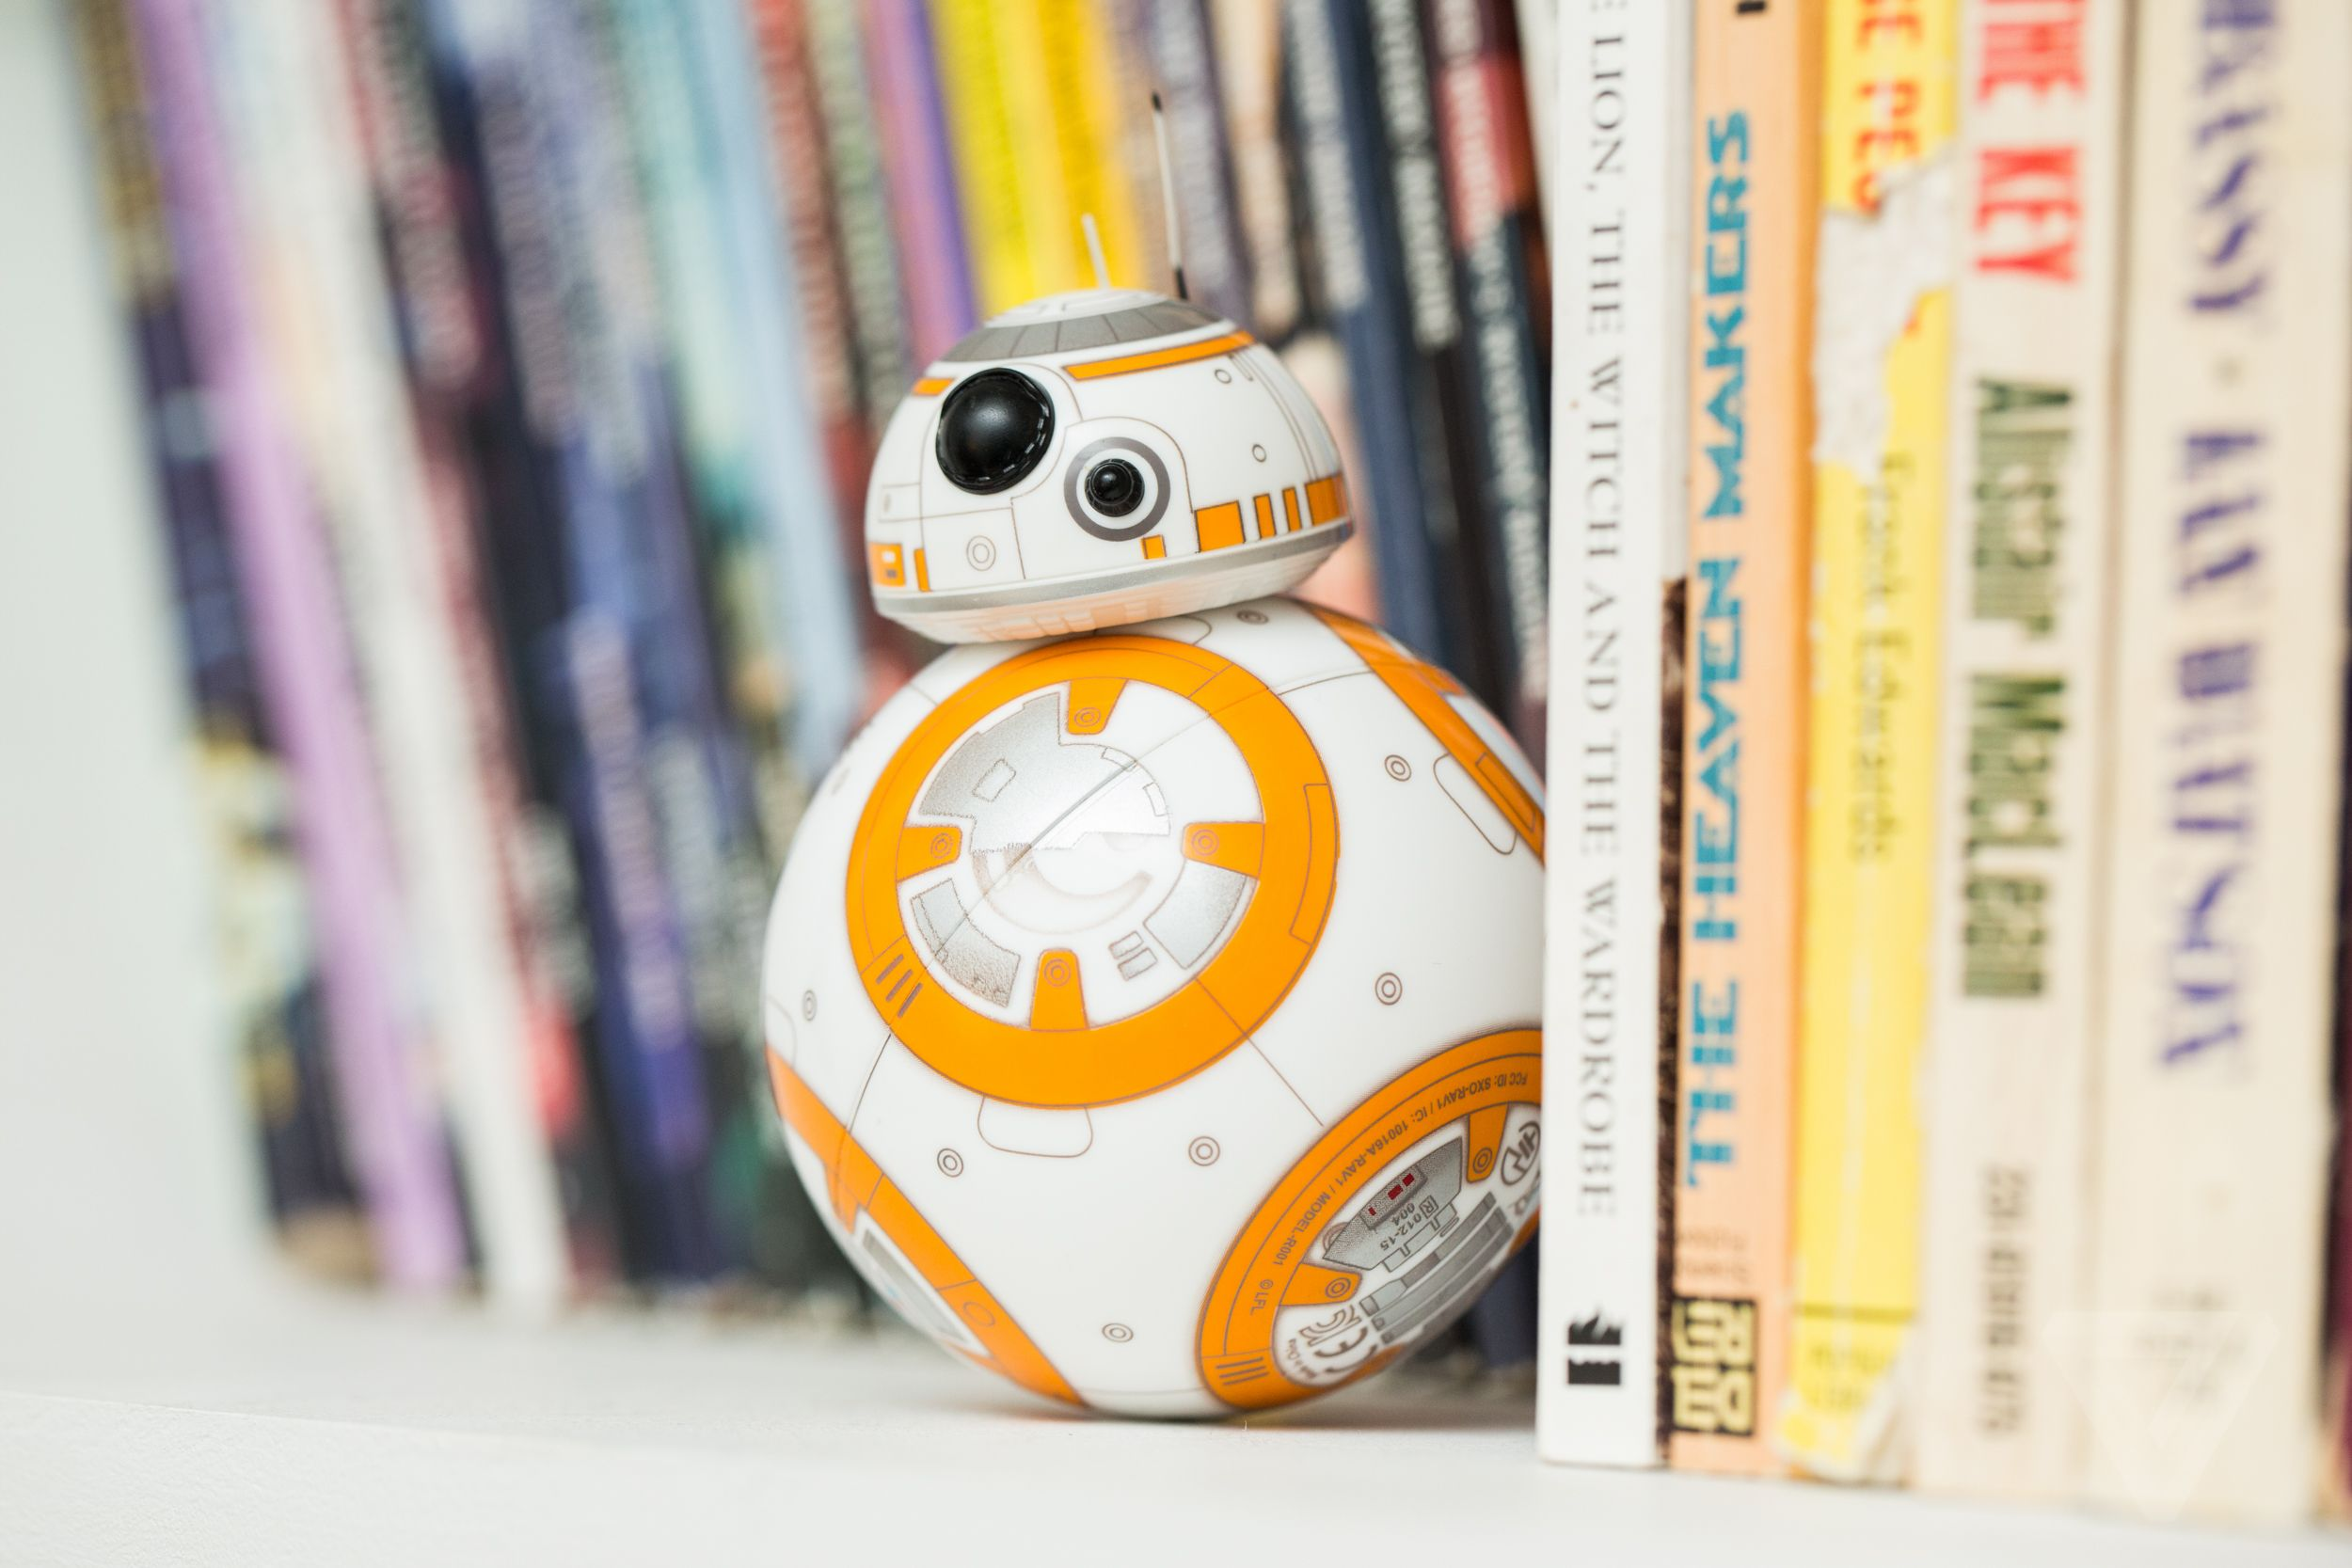 bb8 interactive figure